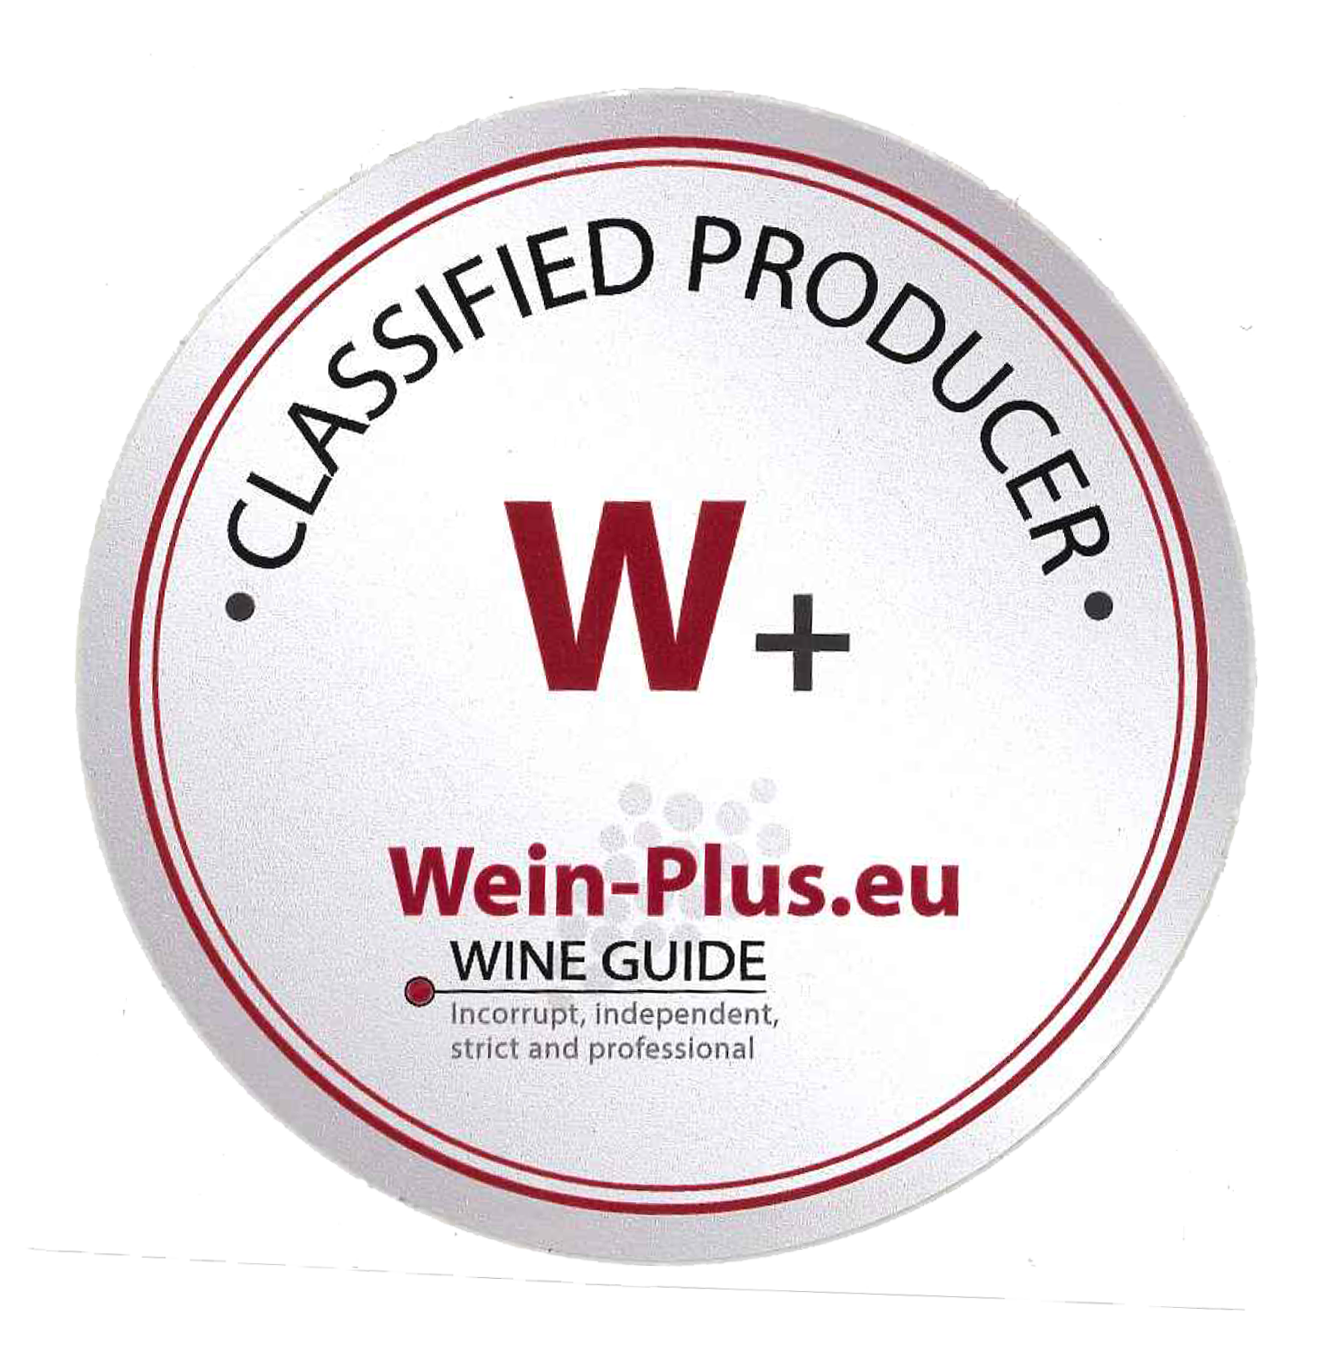 Wein-Plus.eu W+ CLASSIFIED PRODUCER